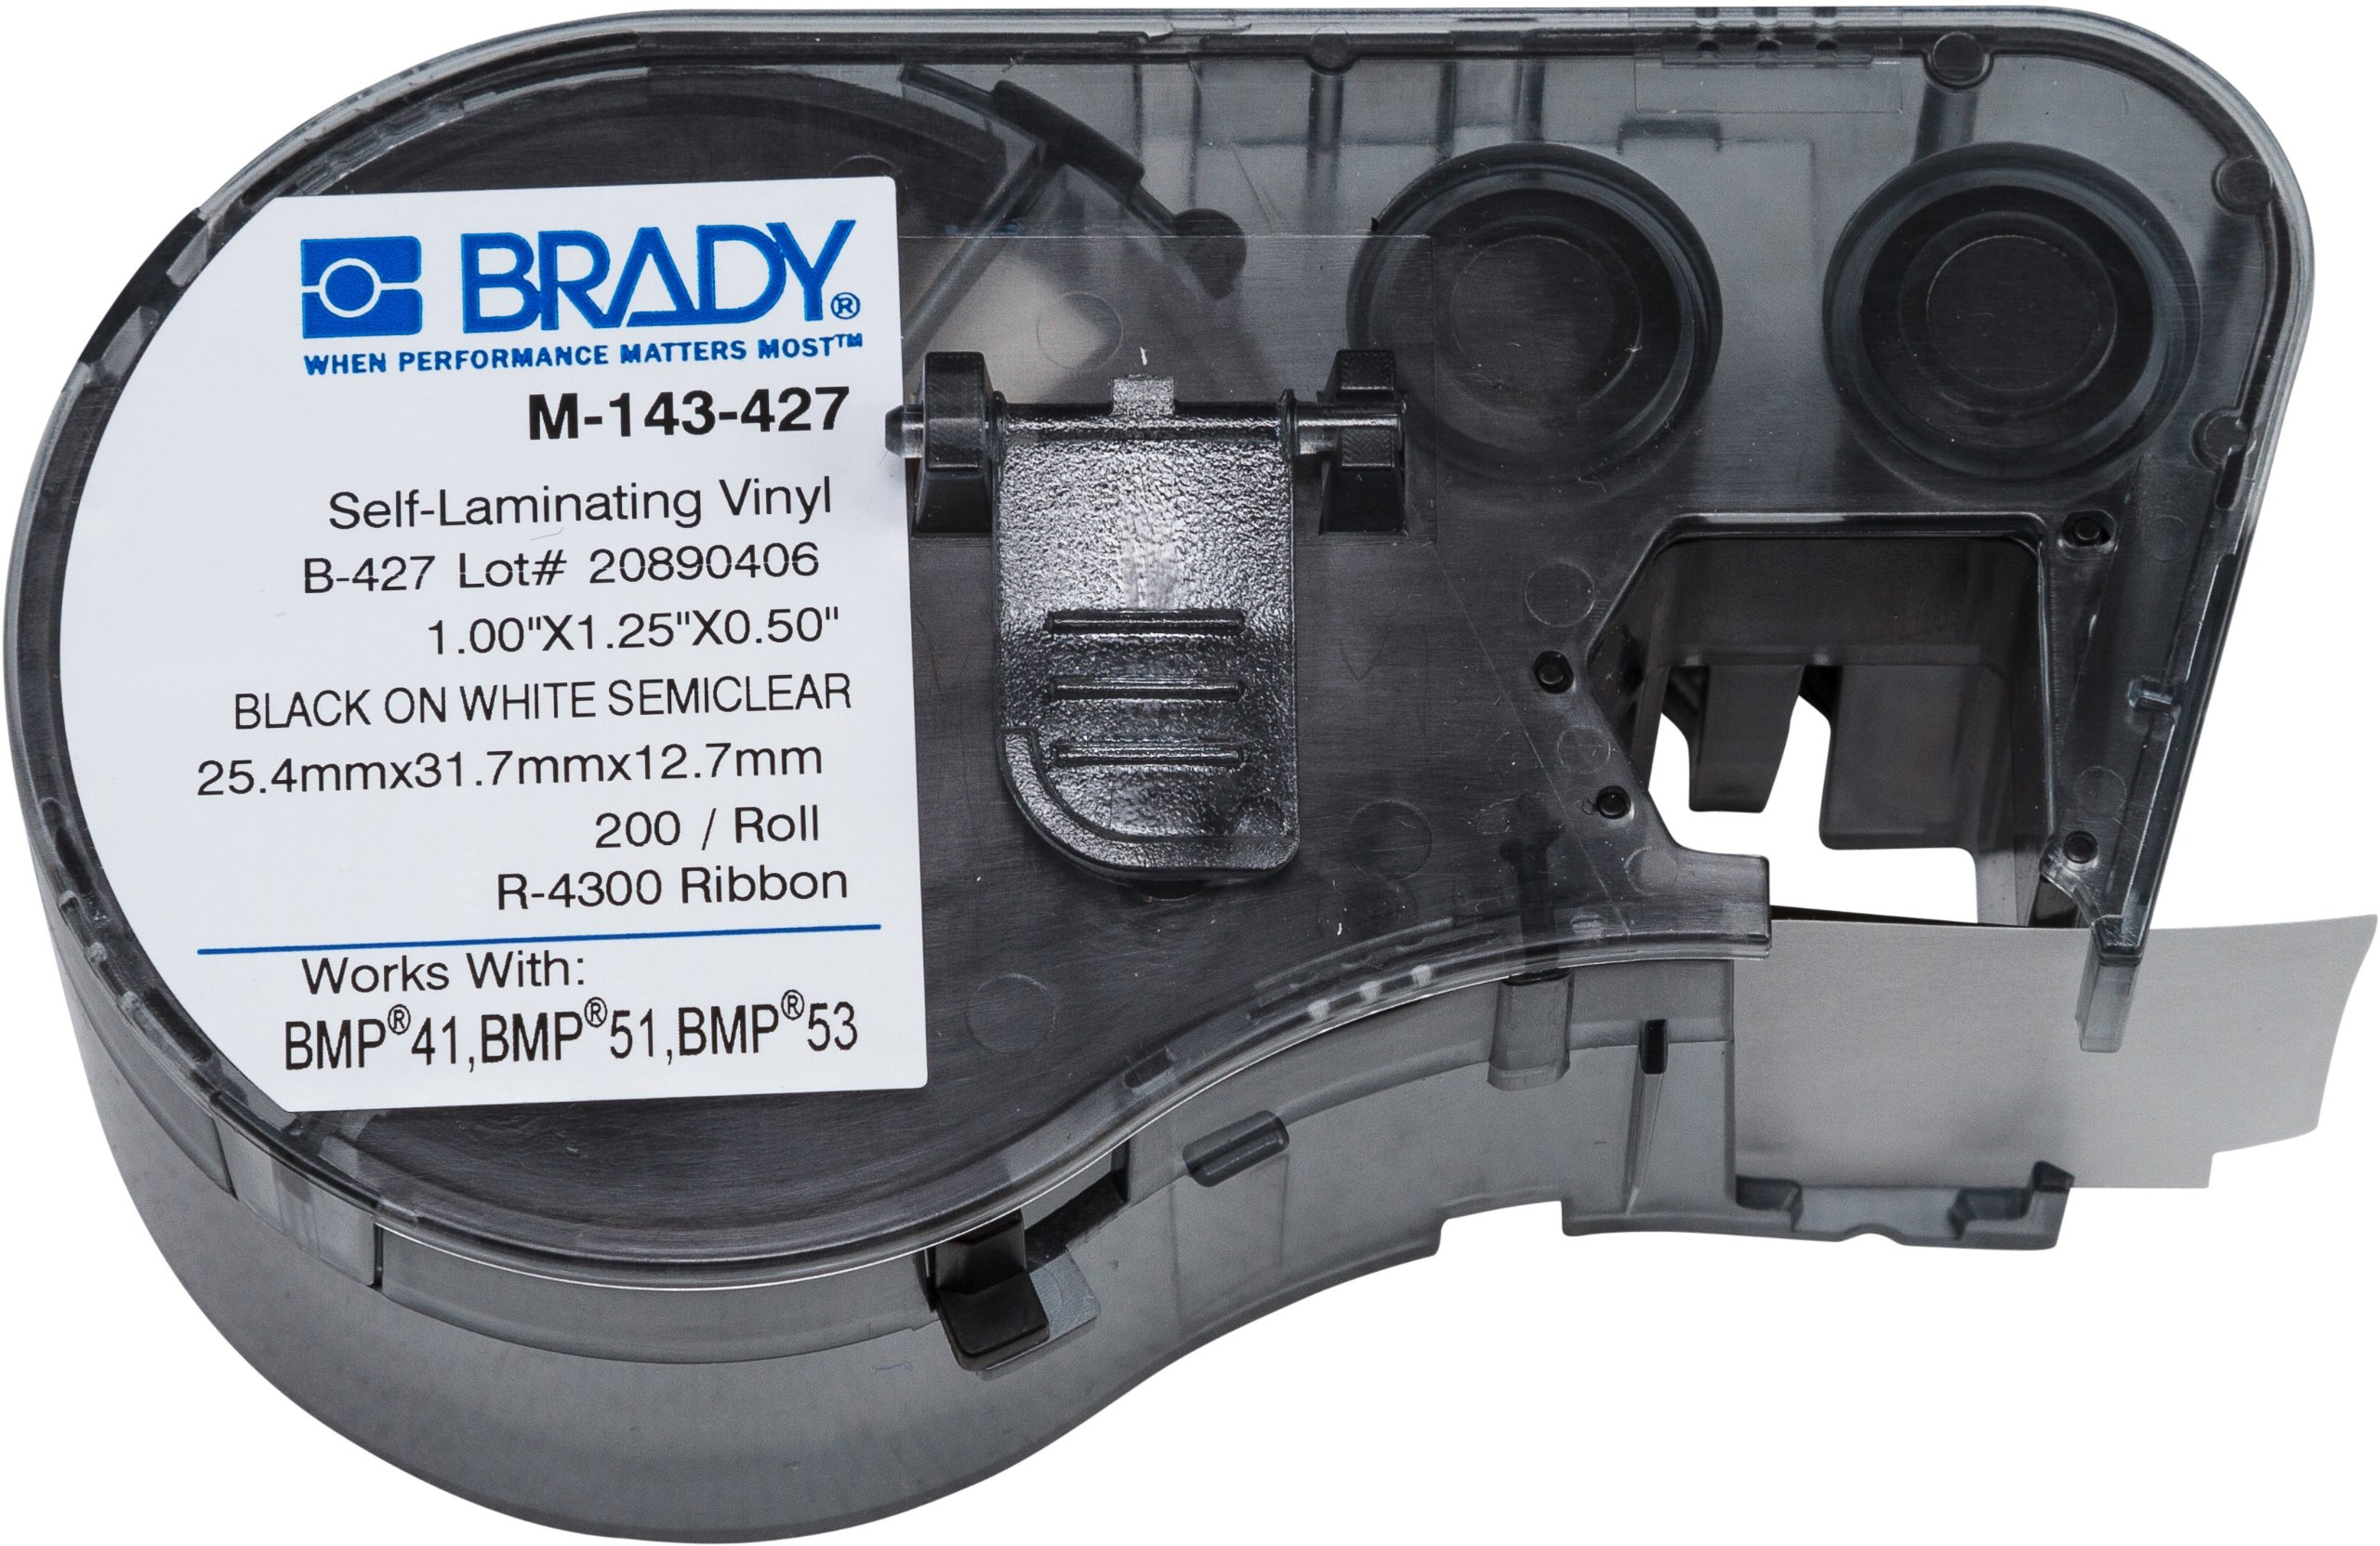 Brady Self-Laminating Vinyl Label Tape (M-143-427) - Black on White, Translucent Tape - Compatible with BMP41, BMP51, and BMP53 Label Makers - 1.25'' Height, 1'' Width